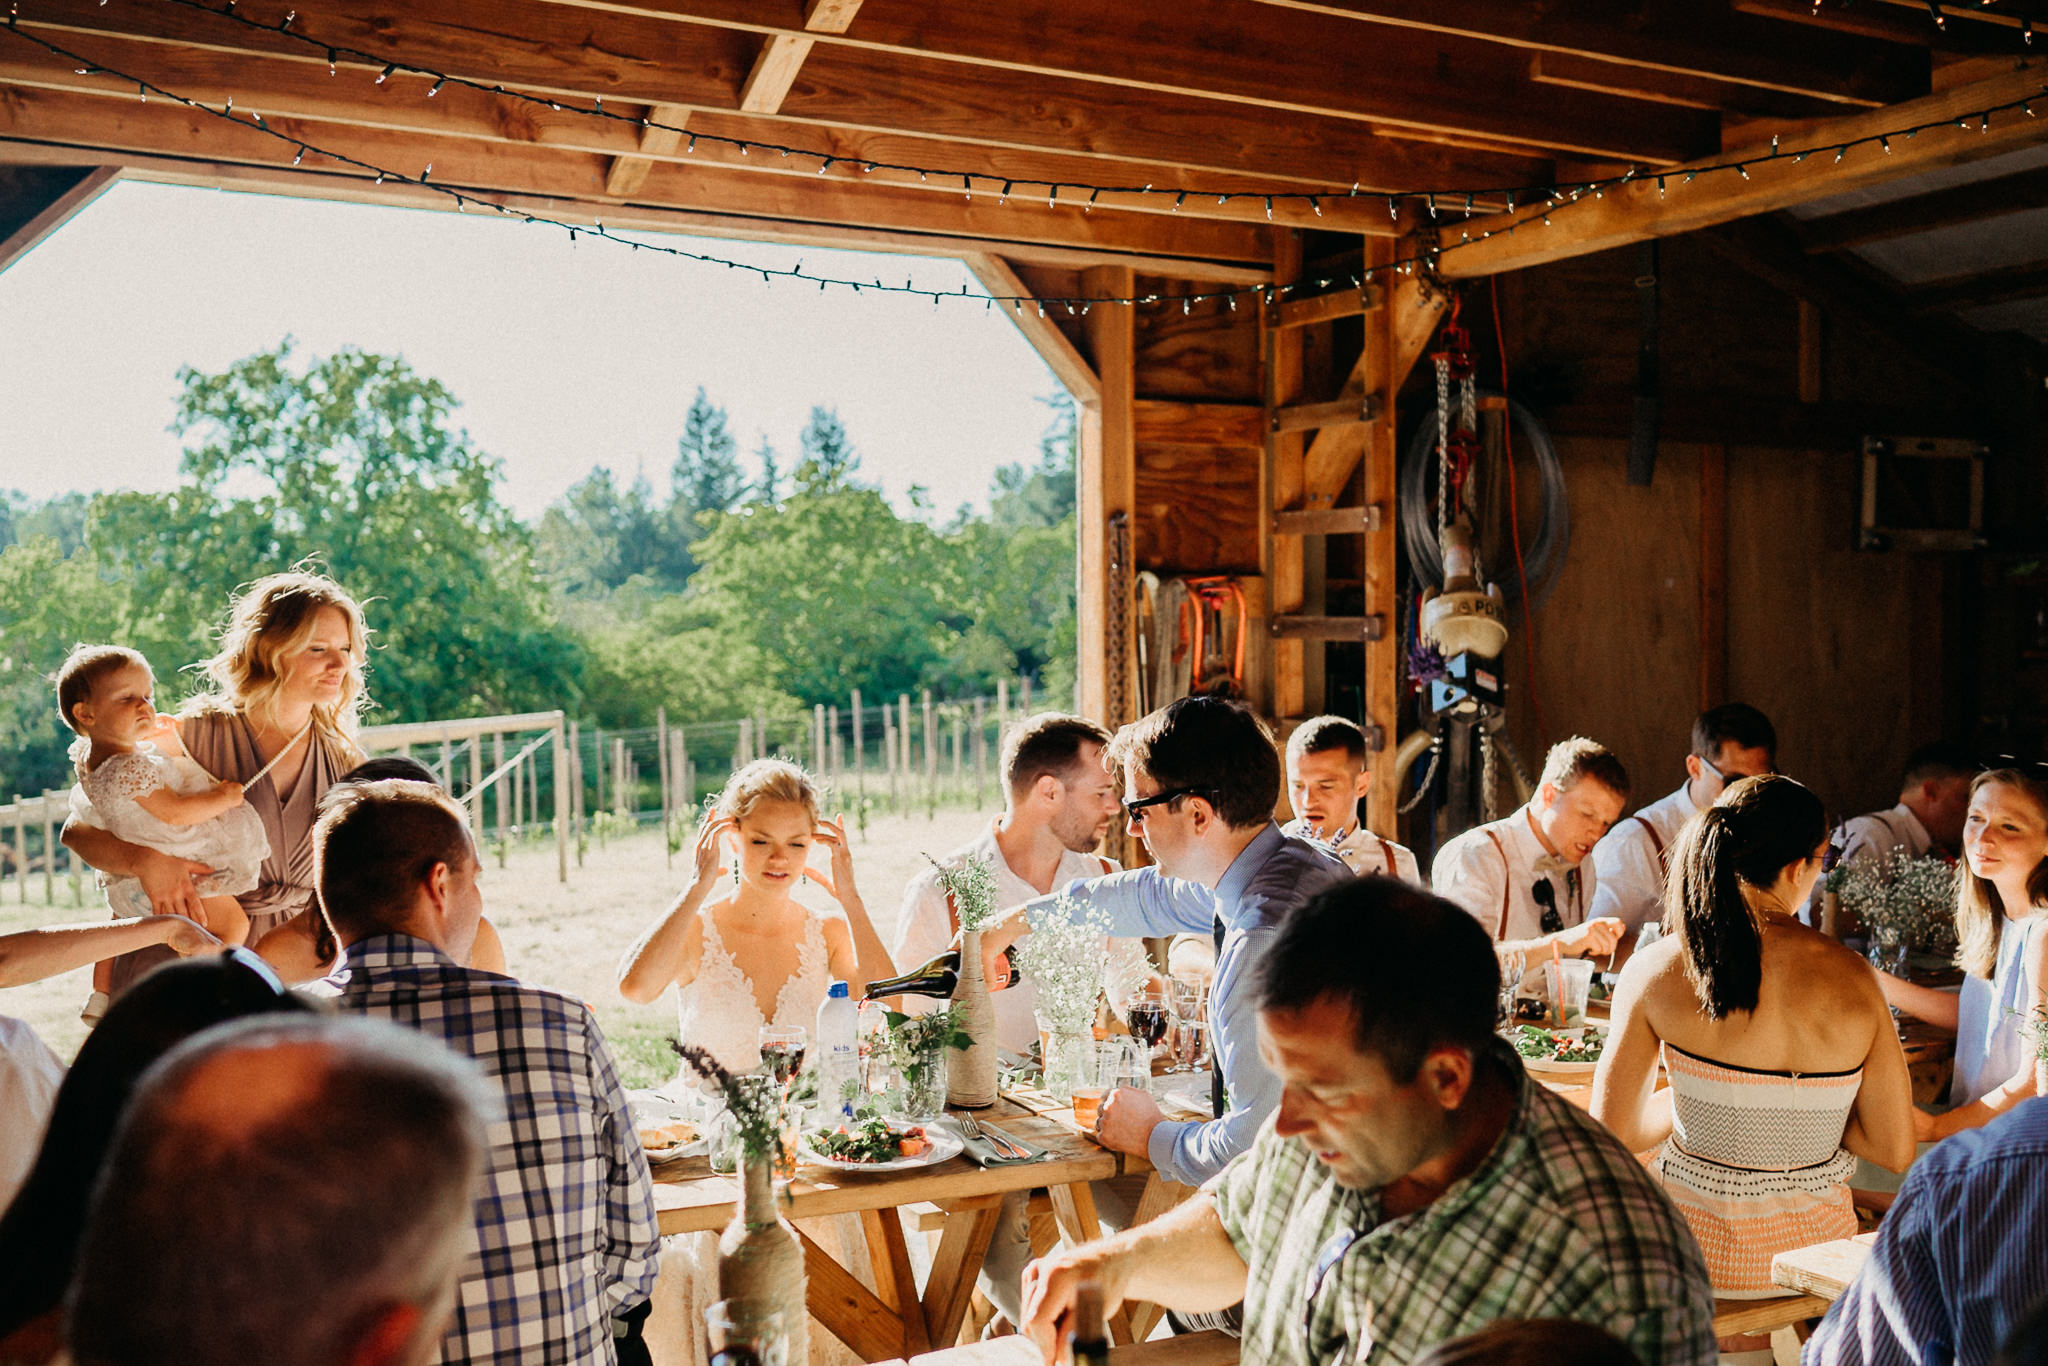 Summerhill-Farms-Portland-Wedding-Photographer-Backyard-Vineyard-75.jpg